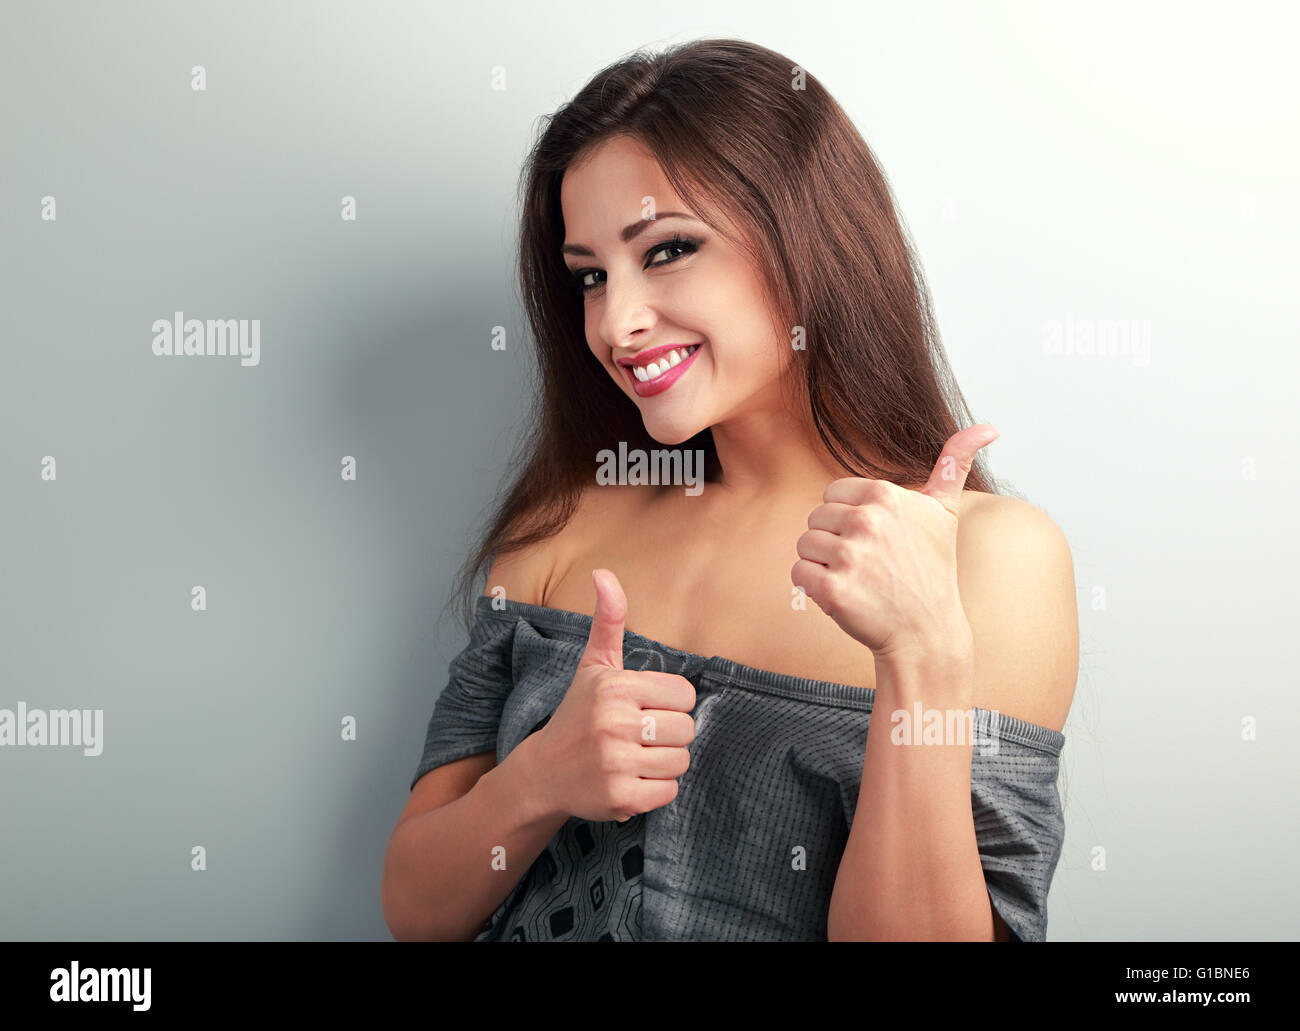 Professionnels optimistes brunette woman showing thumb up sign on blue background Photo Stock